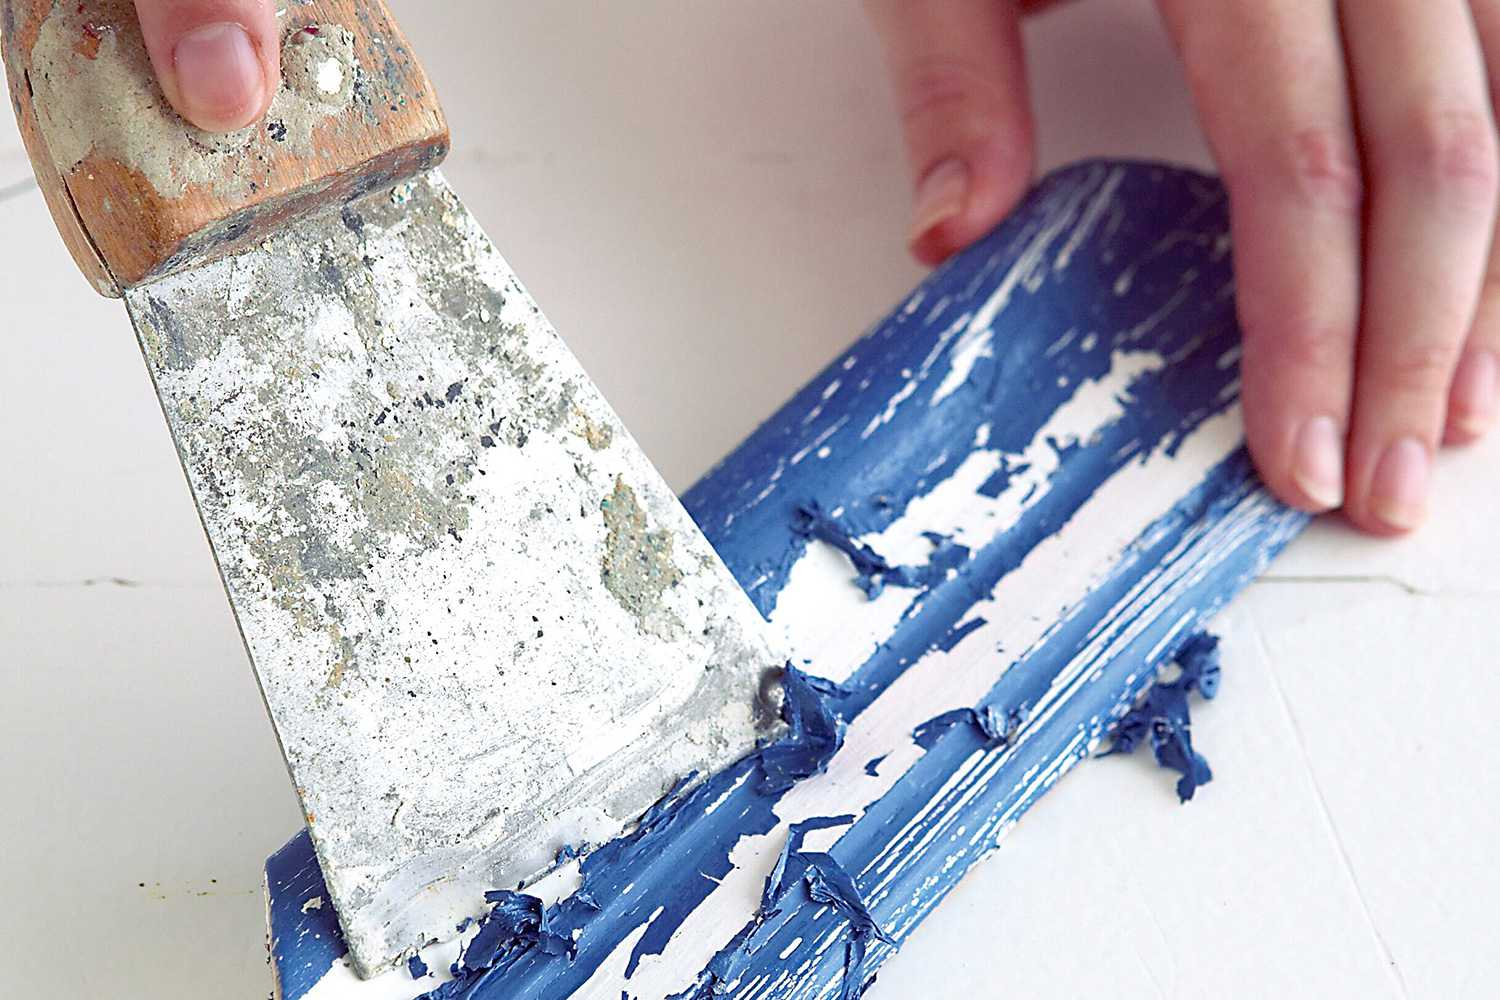 Putty knife scraping paint